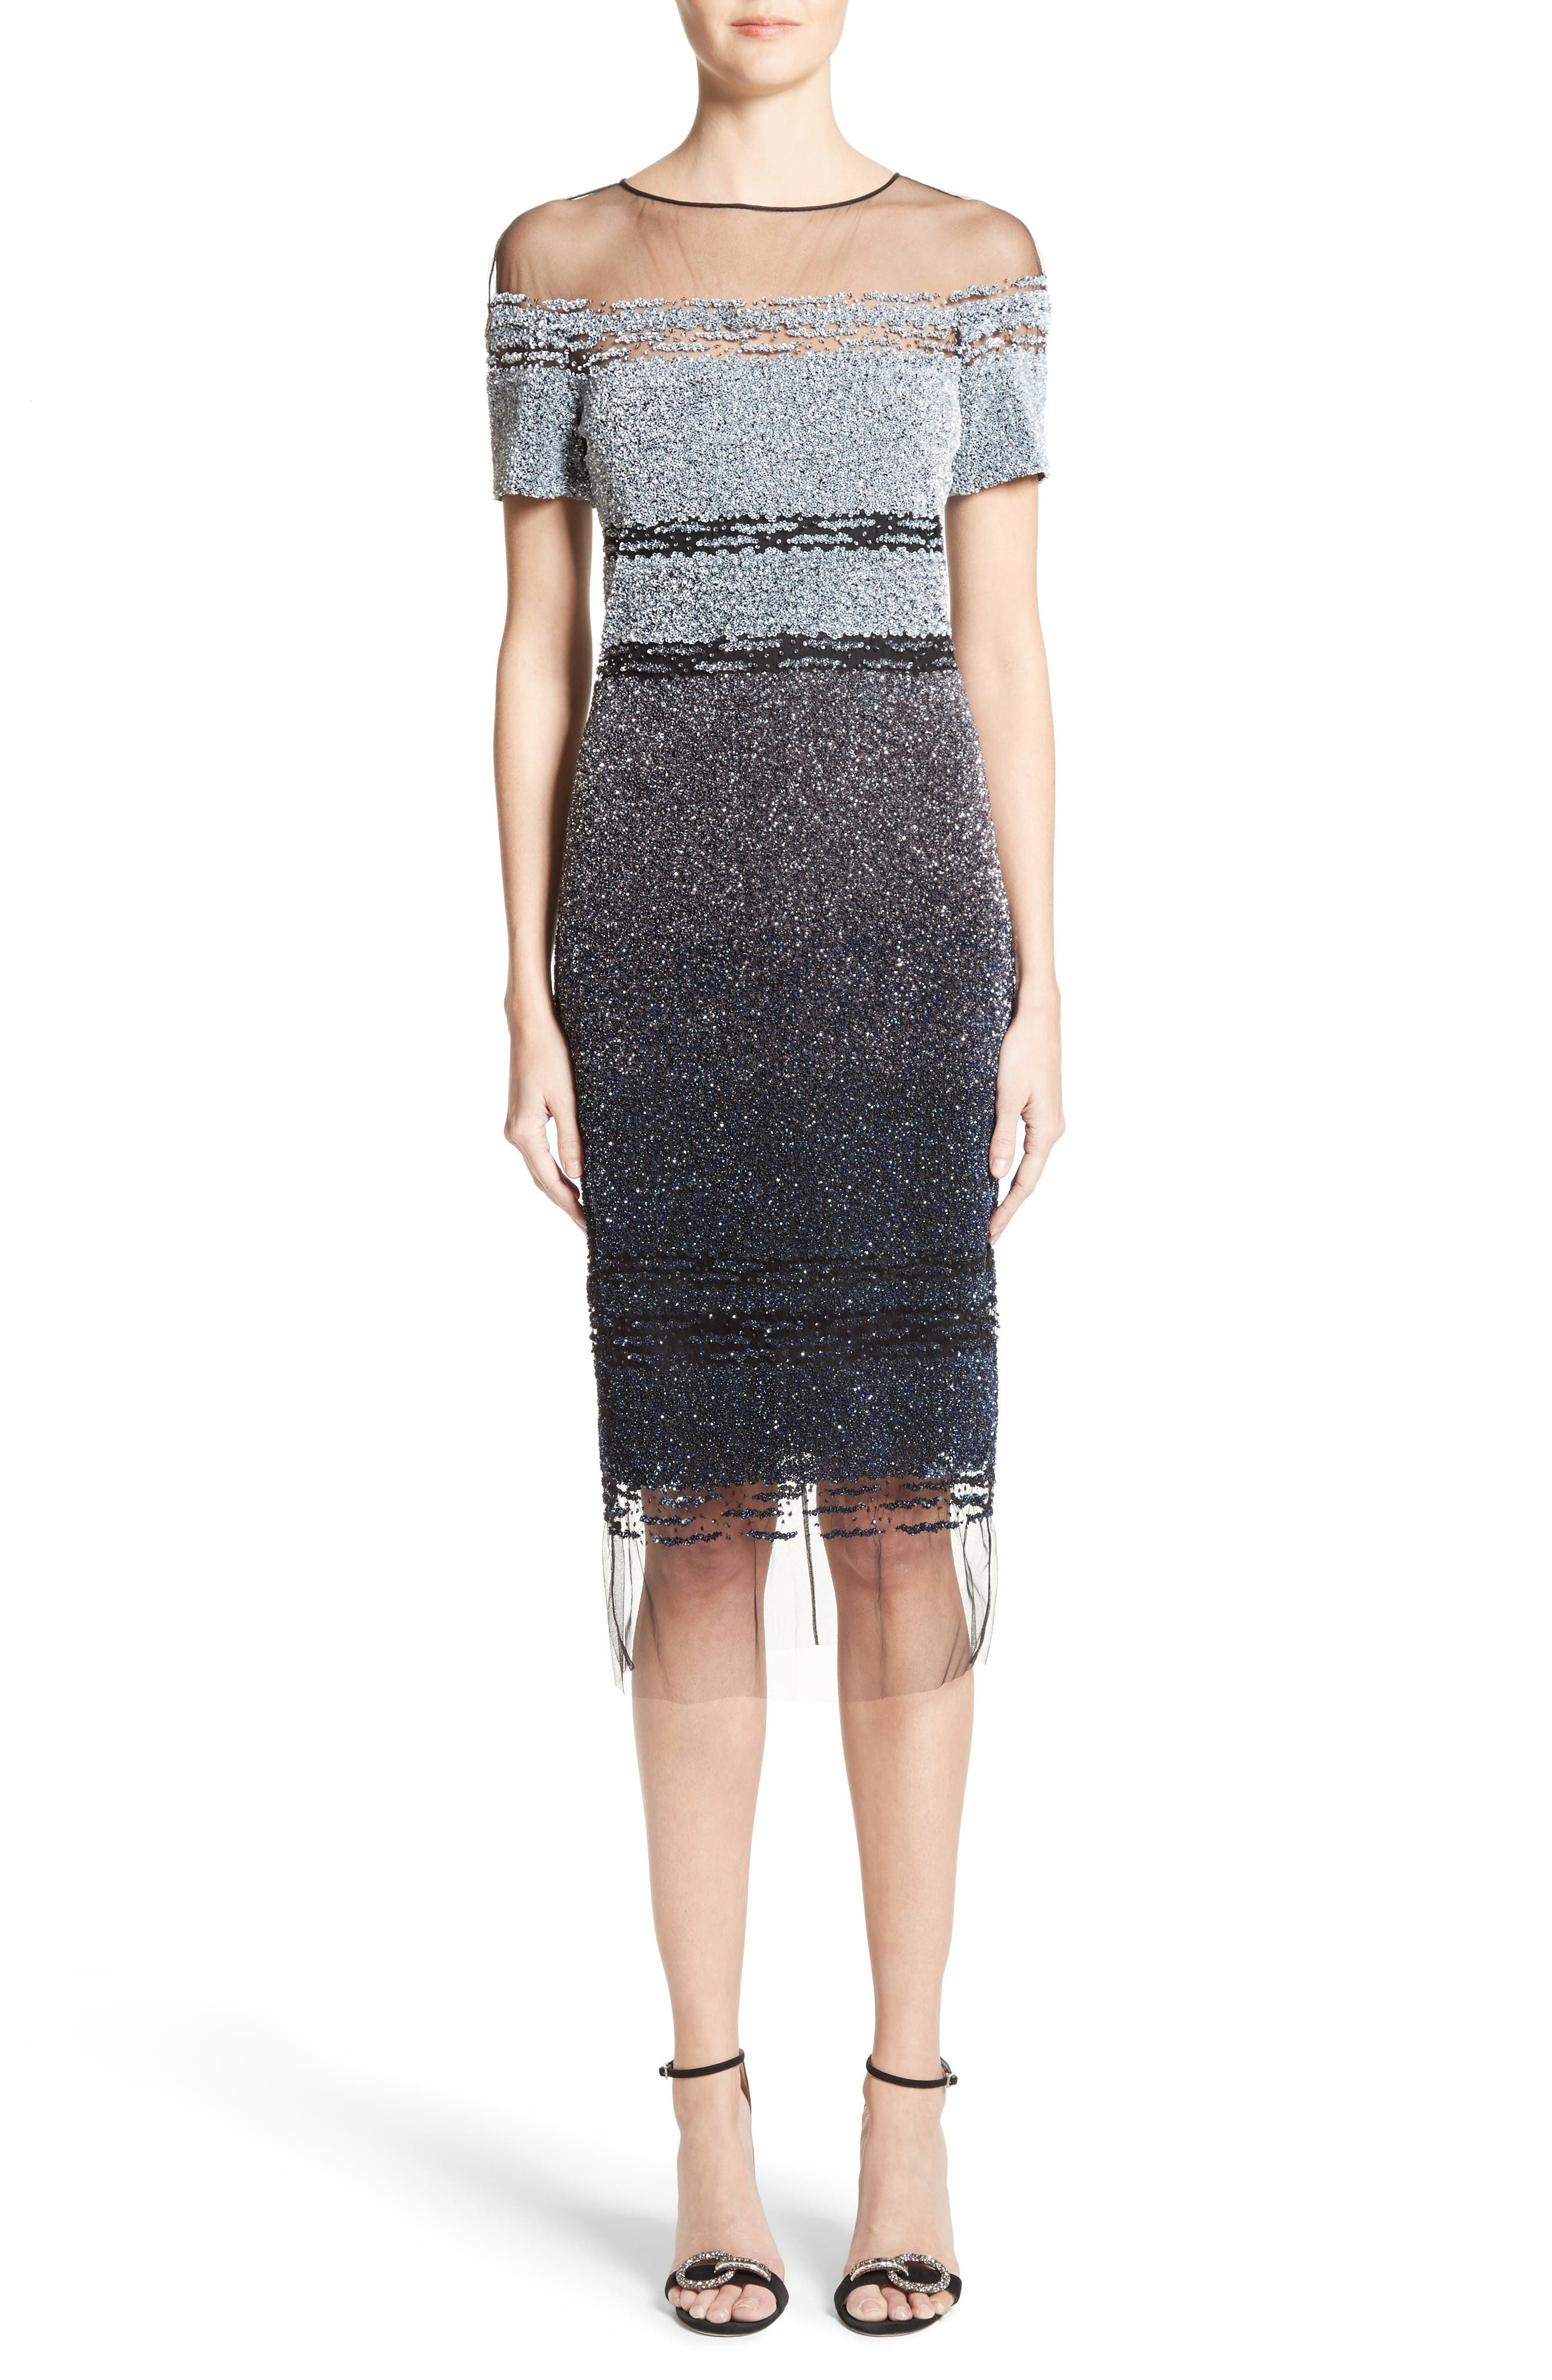 Alternate Image 1 Selected - Pamella Roland Signature Sequin Cocktail Dress